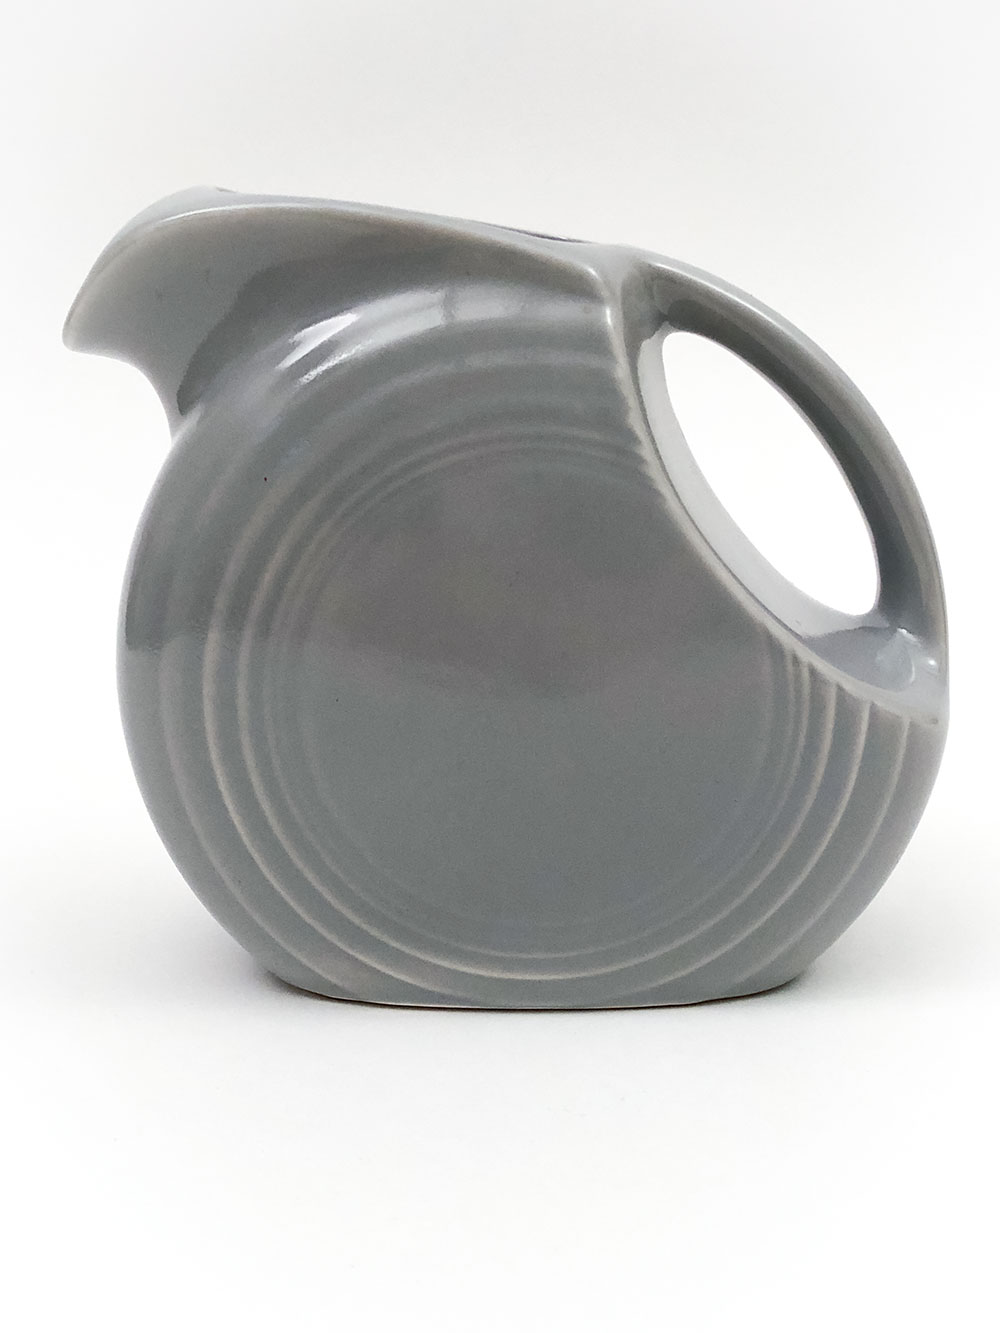 gray color small old fiesta juice pitcher